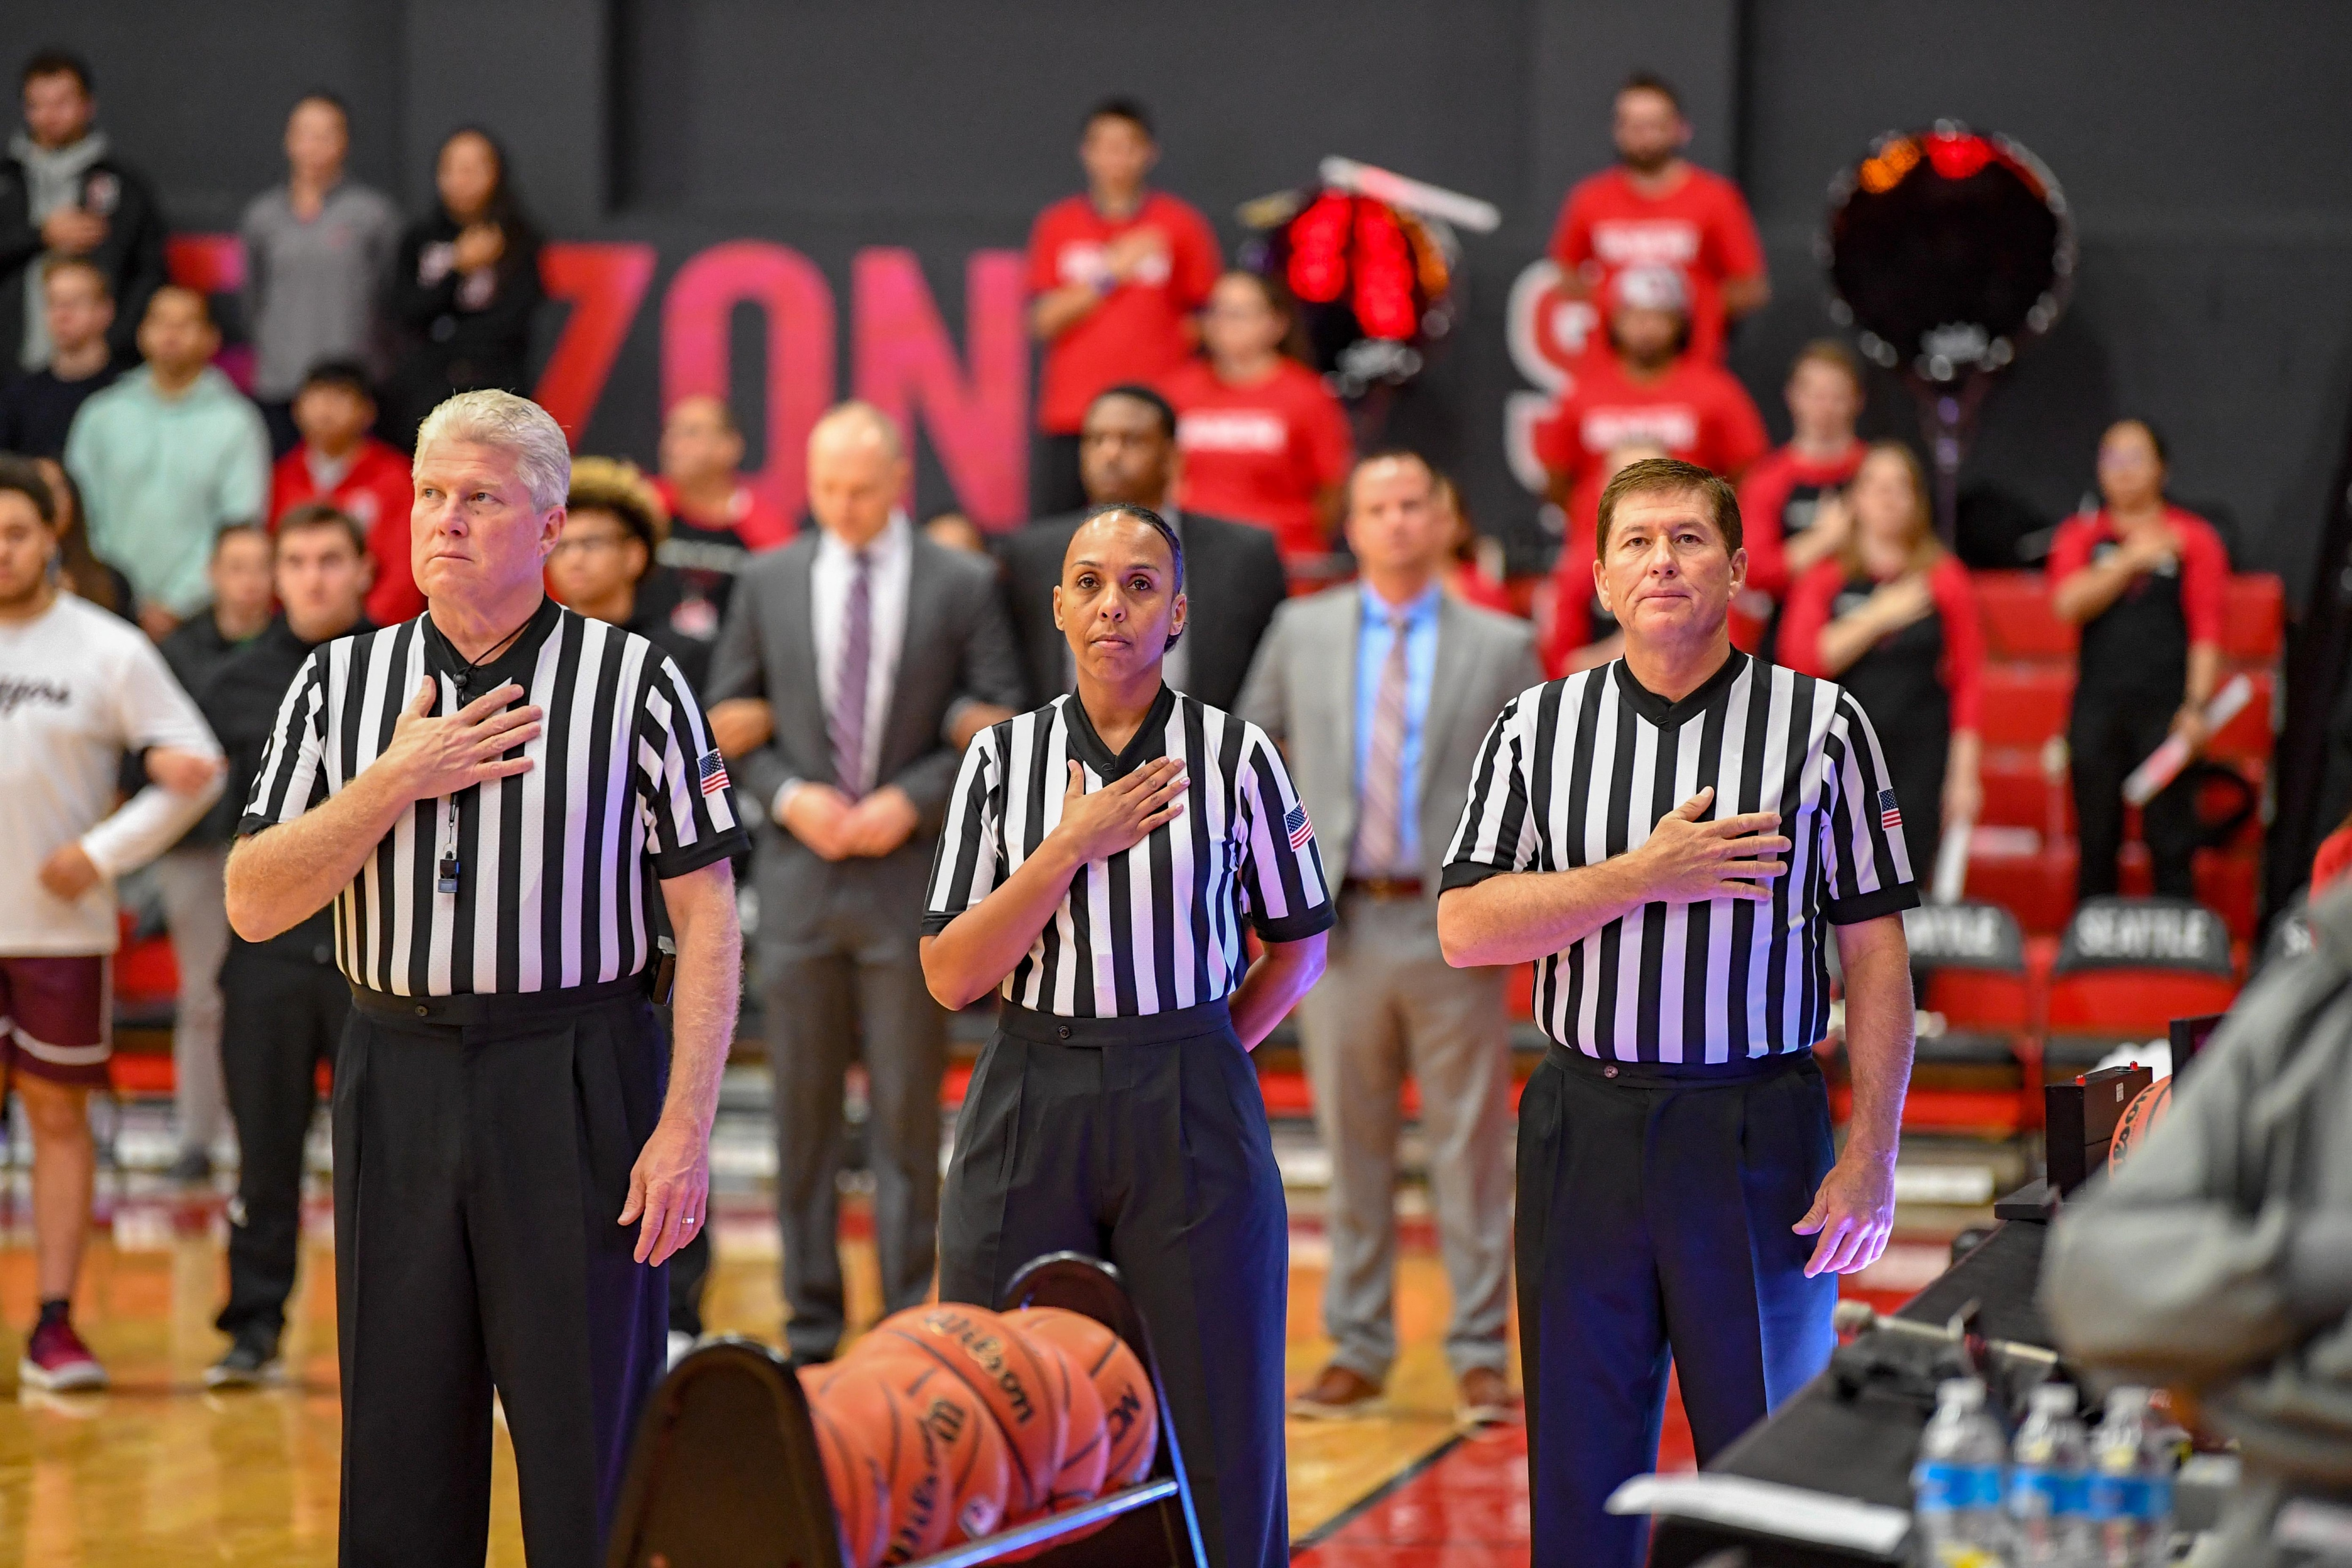 Crystal Hogan is DI men's basketball's only female referee